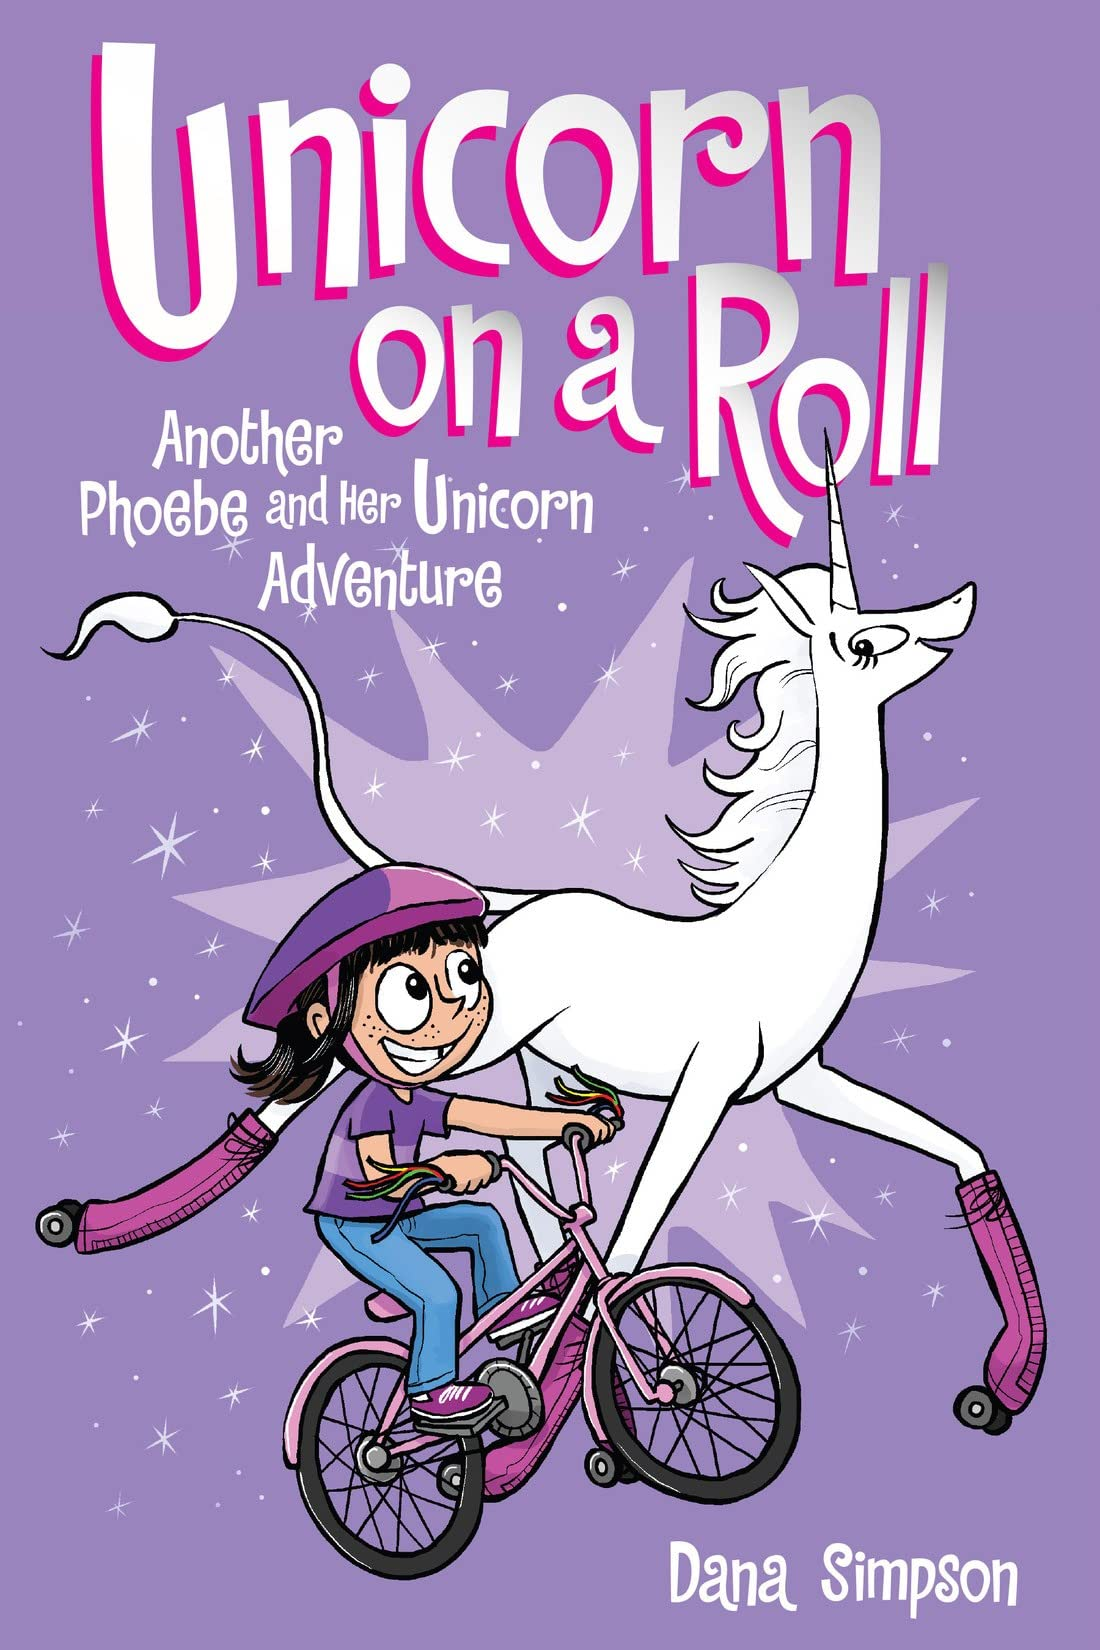 Unicorn on a Roll: Another Phoebe and Her Unicorn Adventure